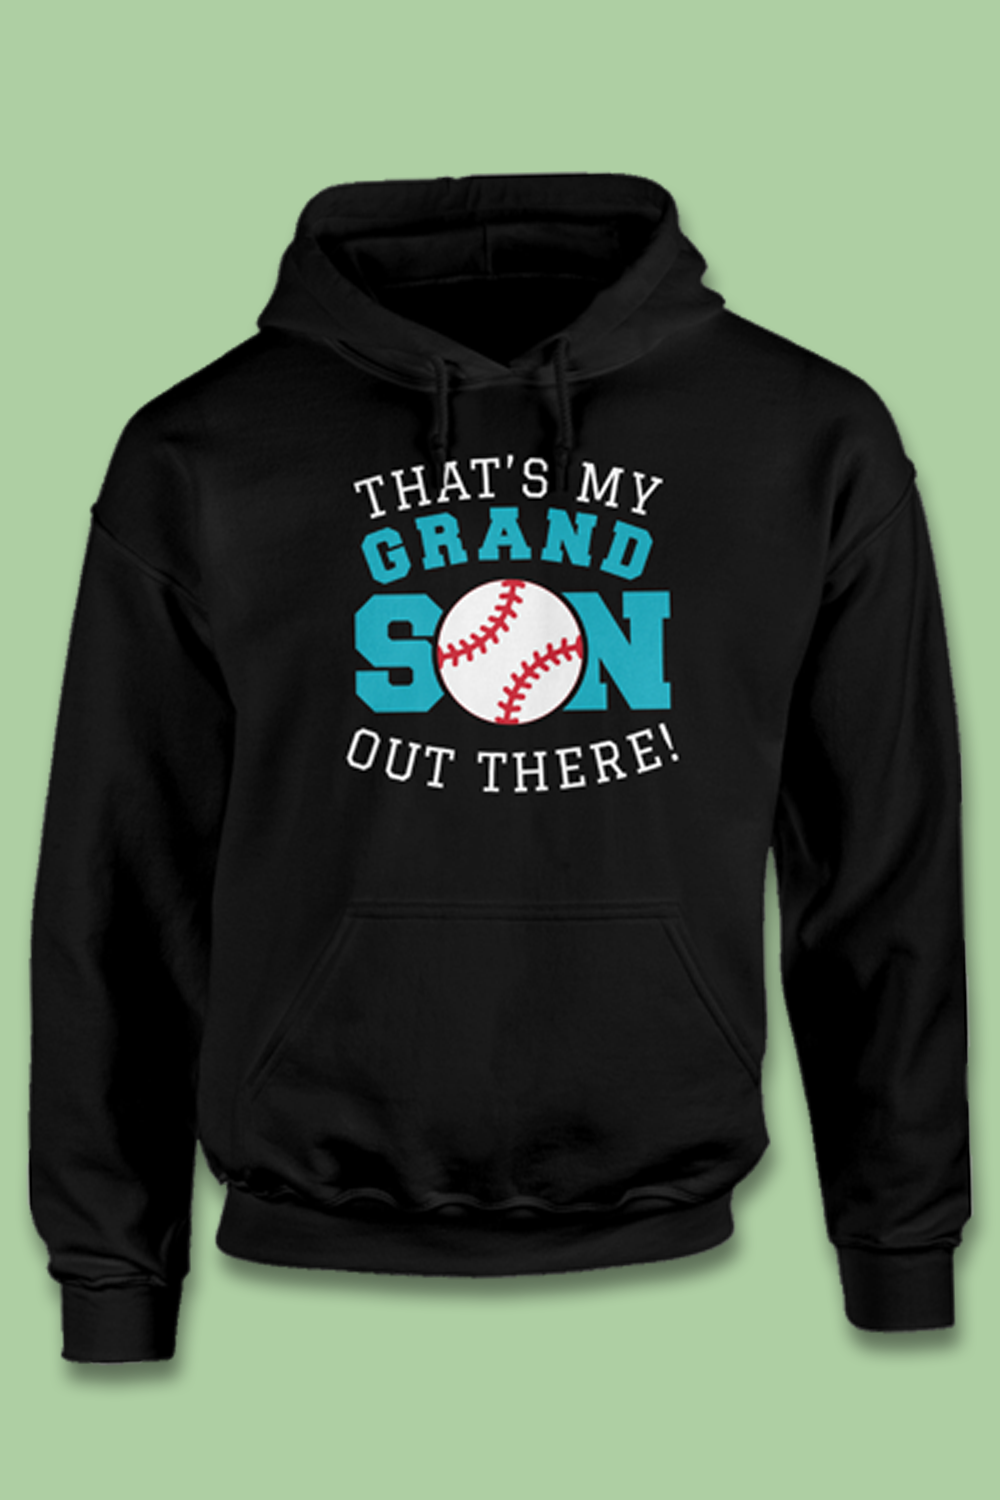 The best gift for grandparents who love to cheer their grandson in baseball! I need this gear <3